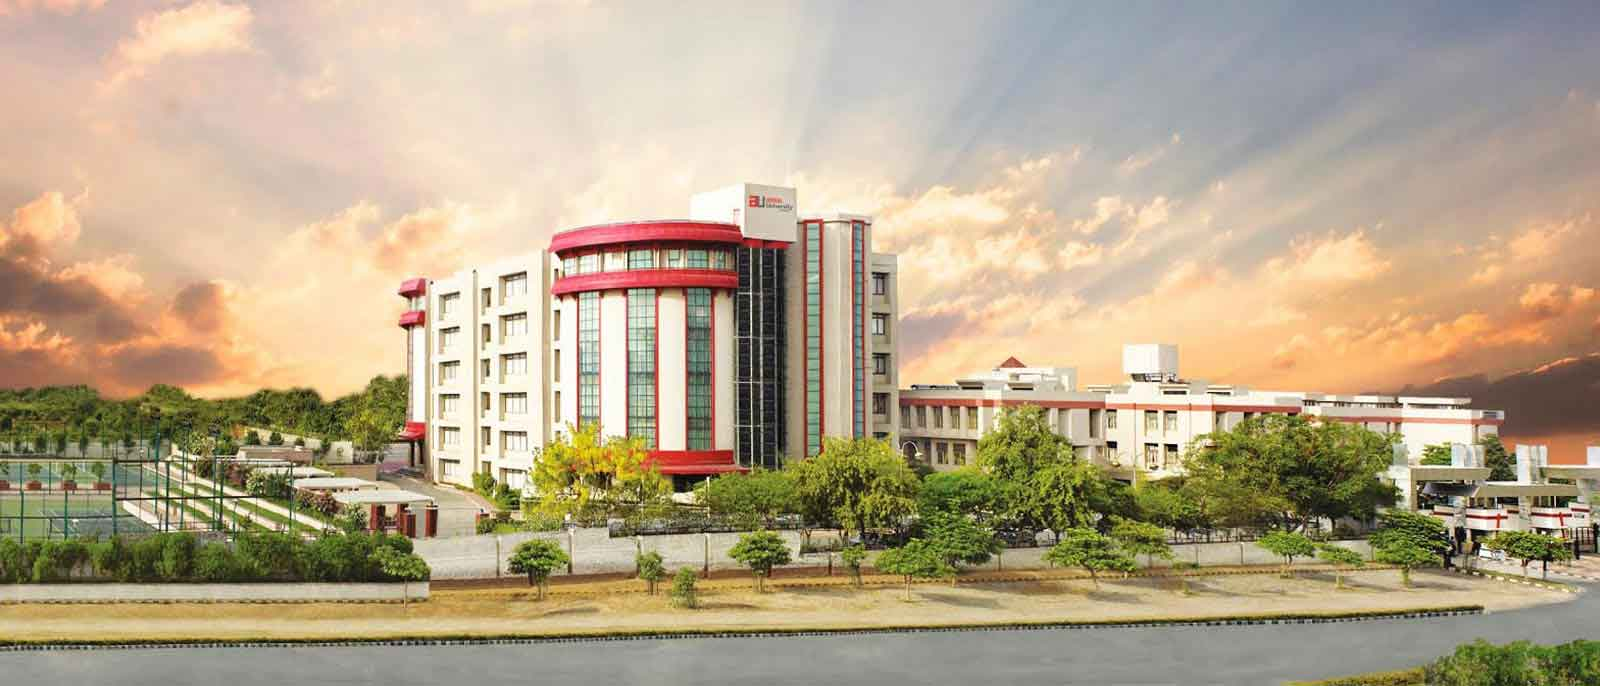 Colleges in Gurgaon